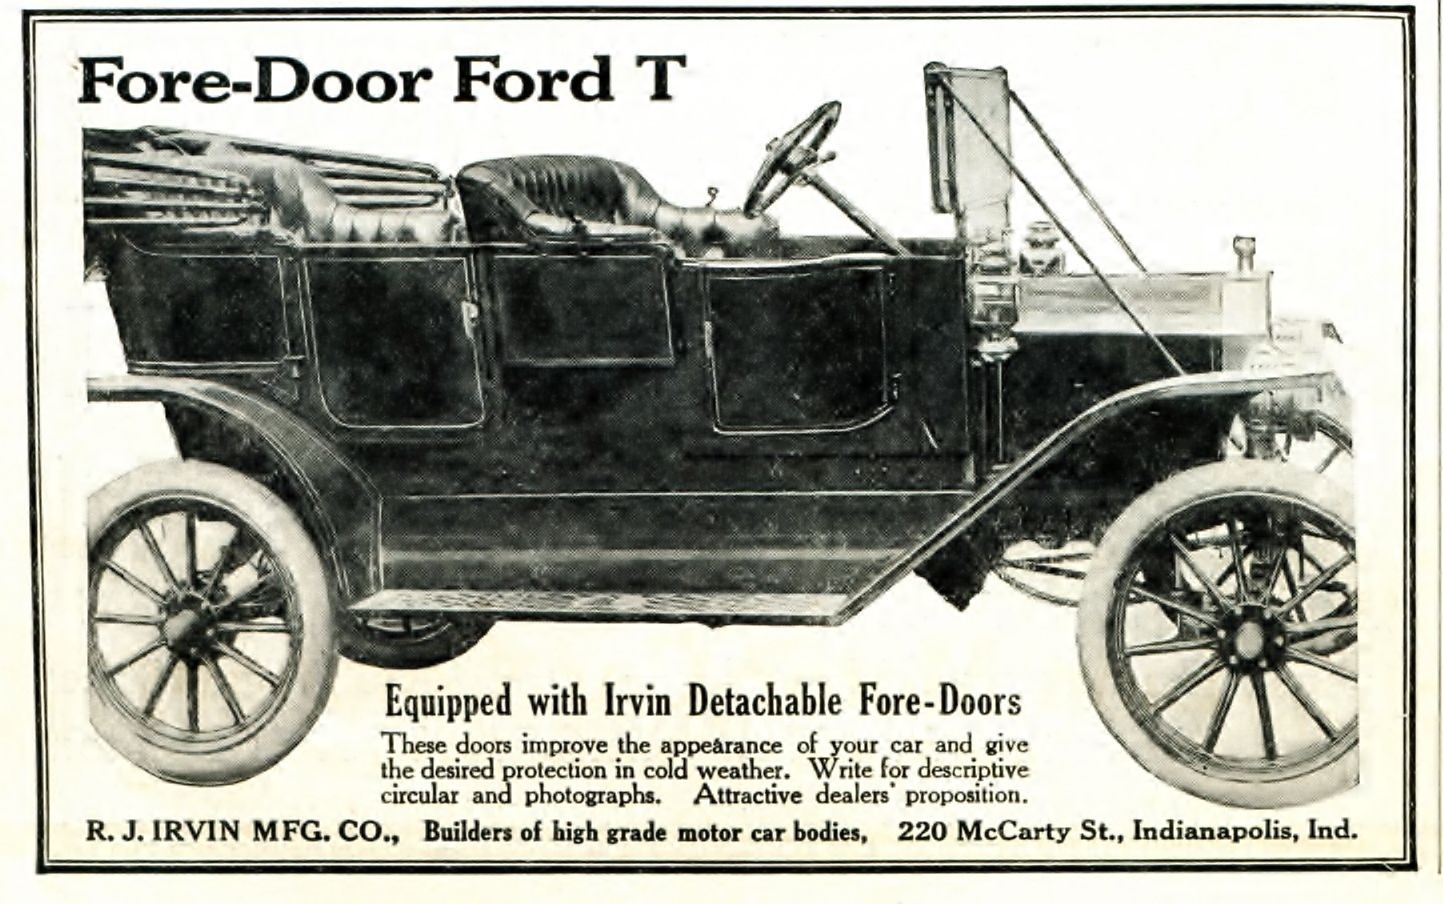 Do you think this would have inspired the fore doors provided on the 12u0027s? & Model T Ford Forum: Fore door for Fords-Photo